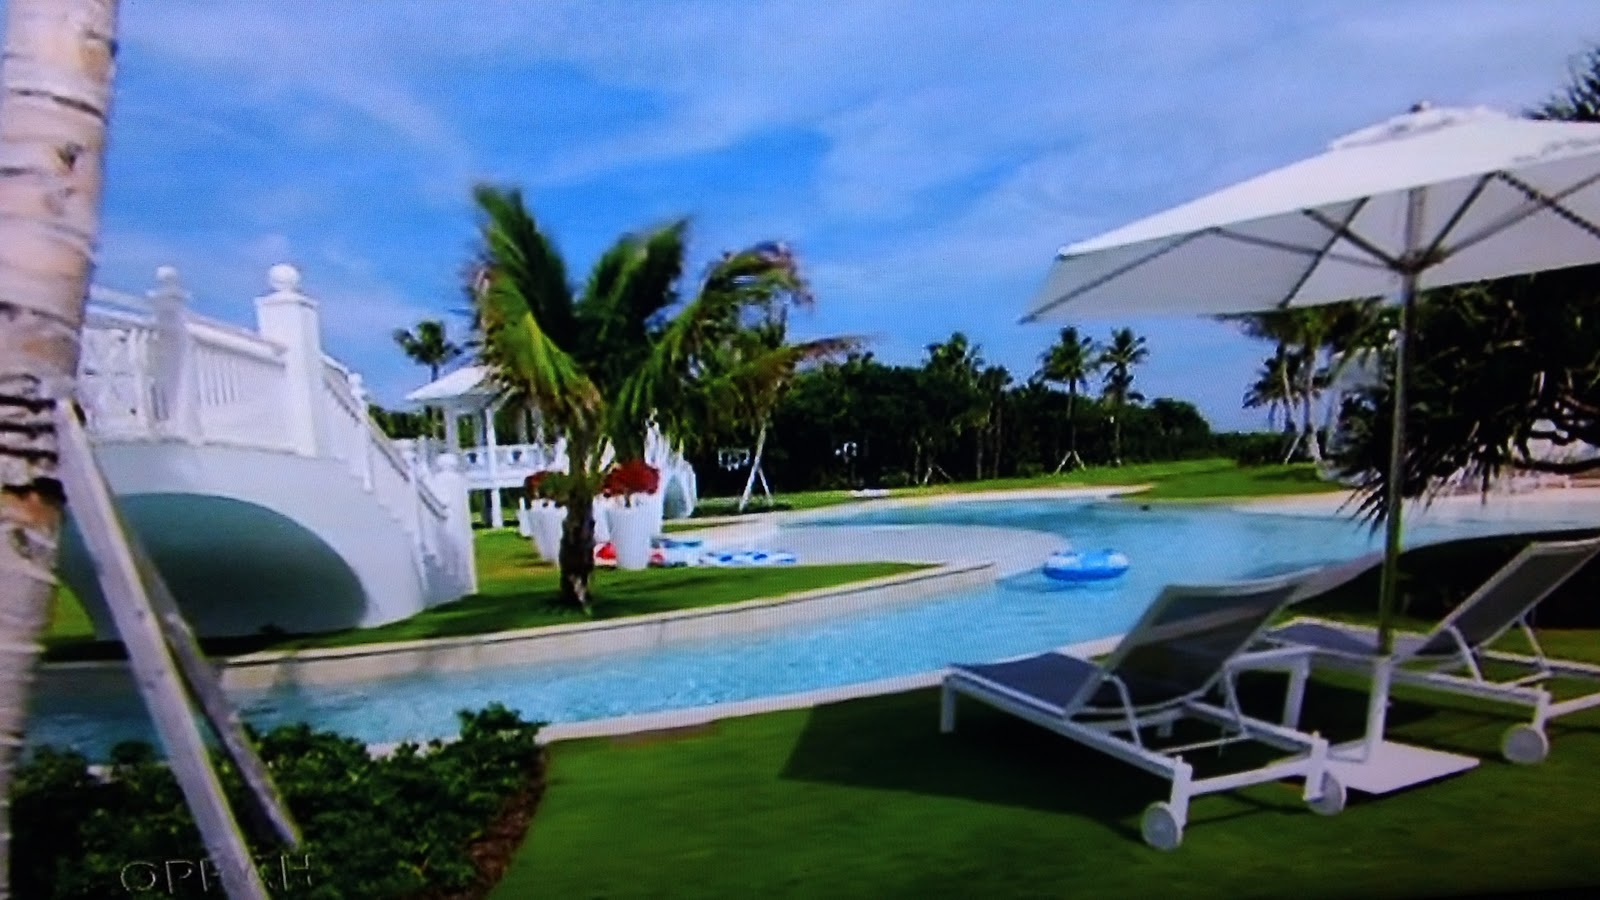 Celine dion 39 s beautiful home in florida hollywood0nlinetv - Celine dion swimming pool ...